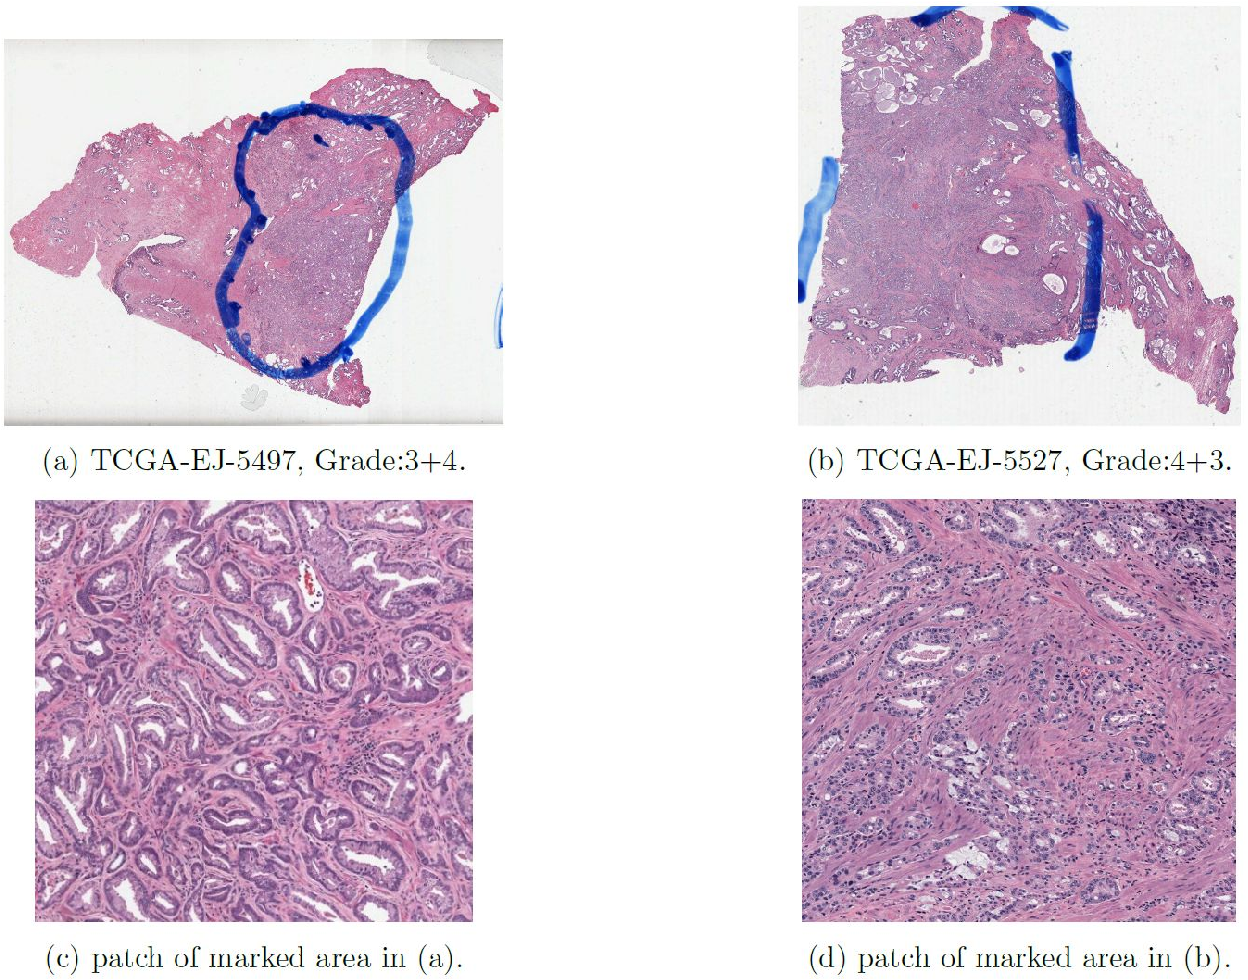 Figure 1 for Large scale digital prostate pathology image analysis combining feature extraction and deep neural network